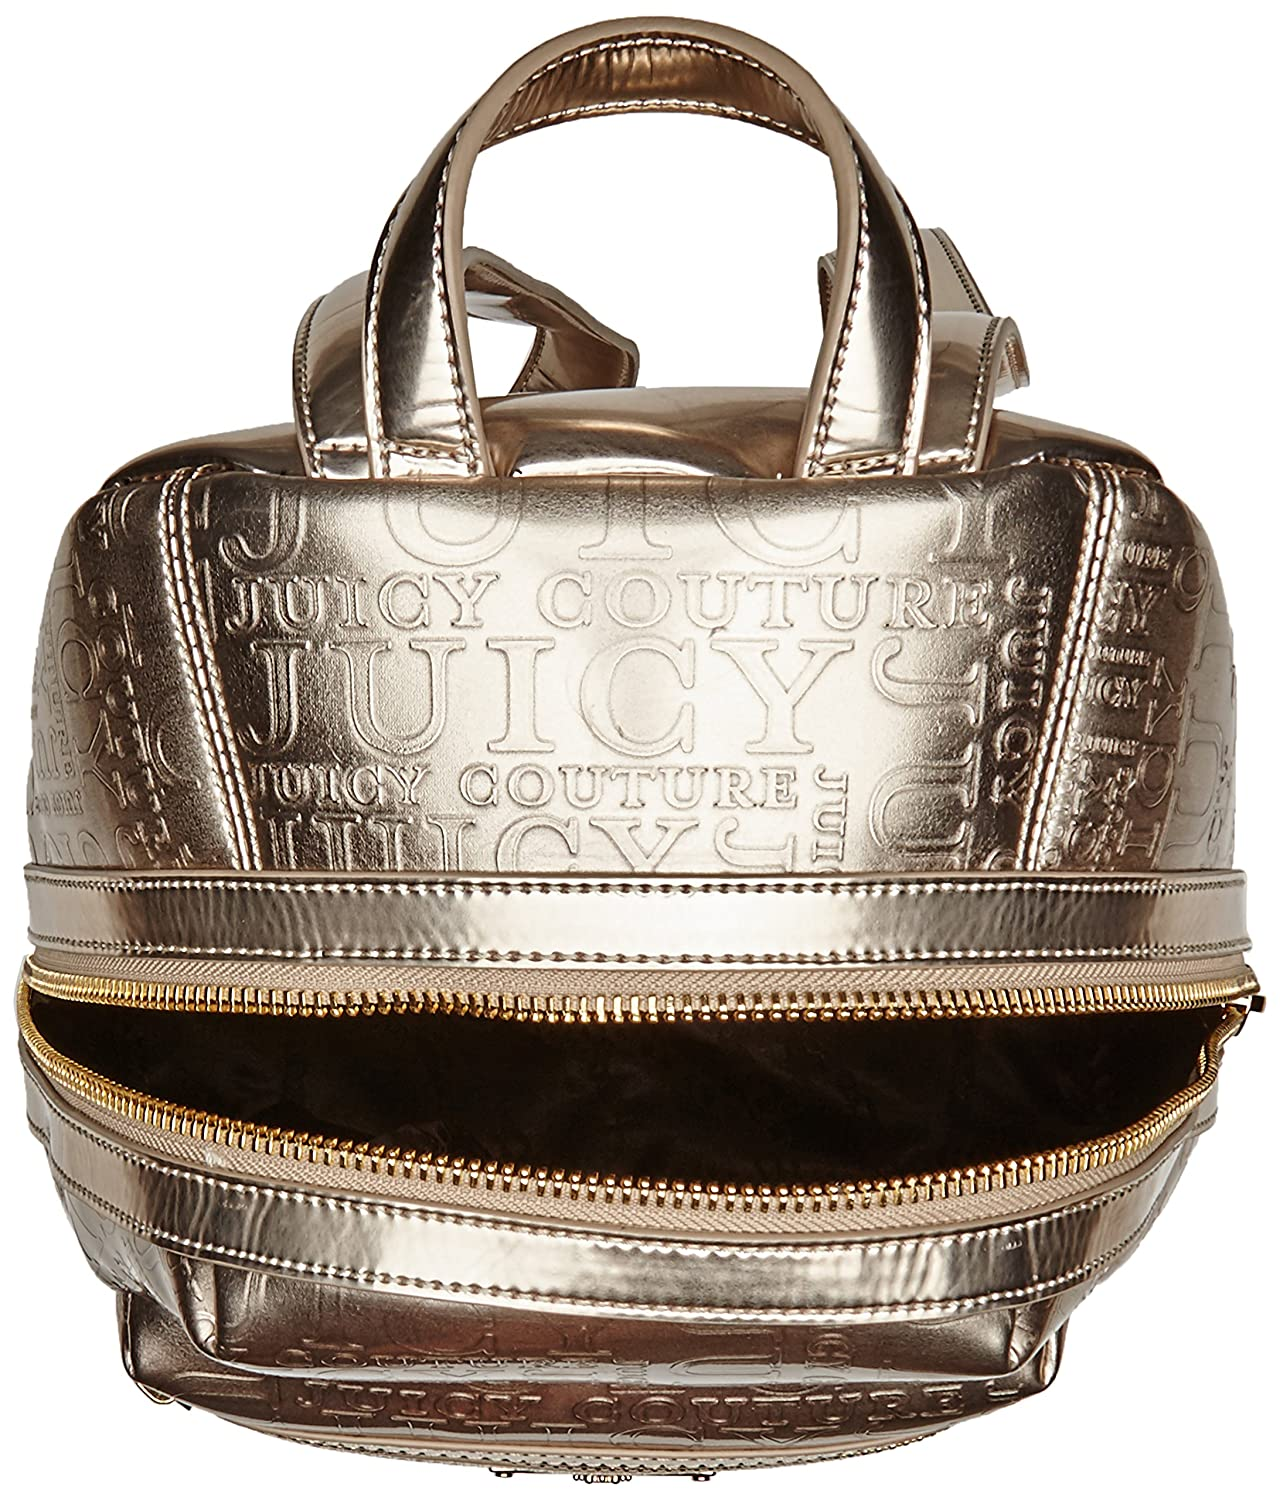 797babe5a83d Juicy Couture Womens Cascading Juicy Backpack Metallic White gold   Amazon.co.uk  Shoes   Bags